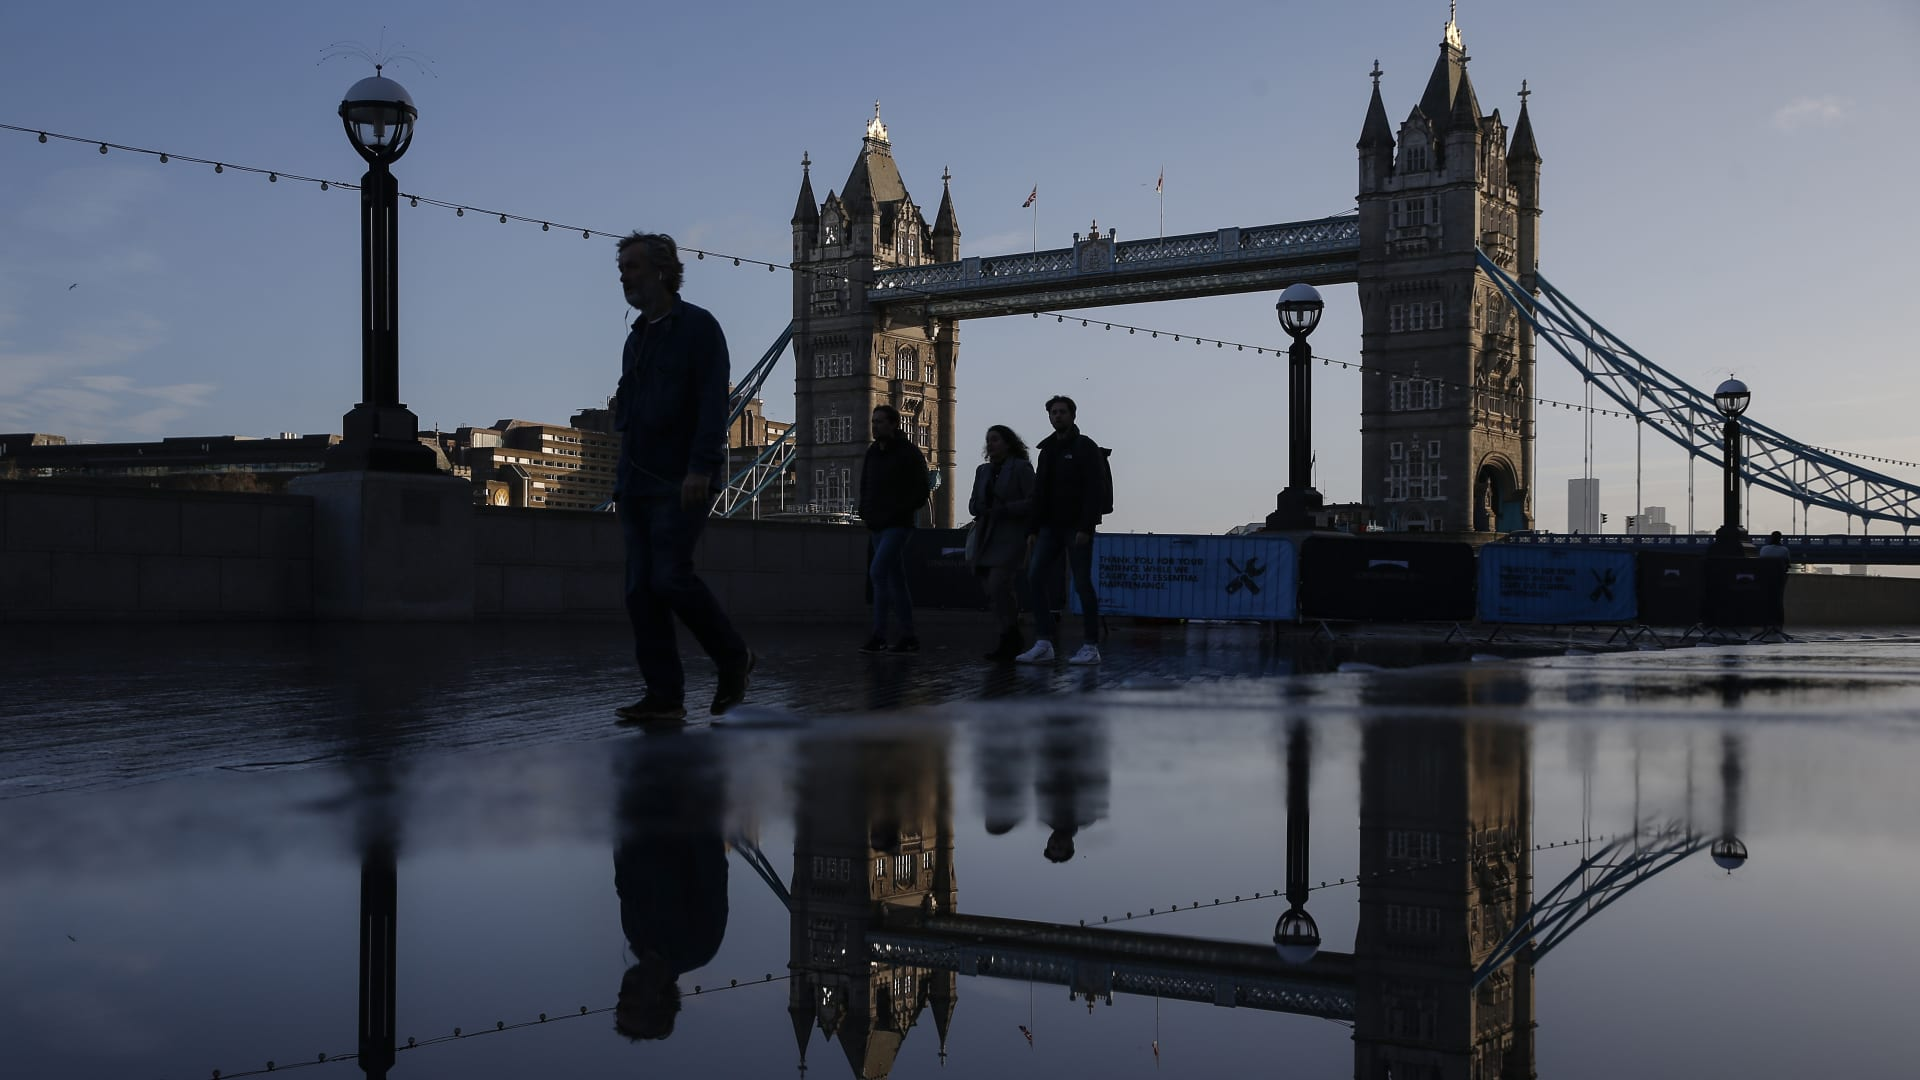 Commuters walk along the Thames Path in view of Tower Bridge in London, U.K., on Monday, Dec. 14, 2020.